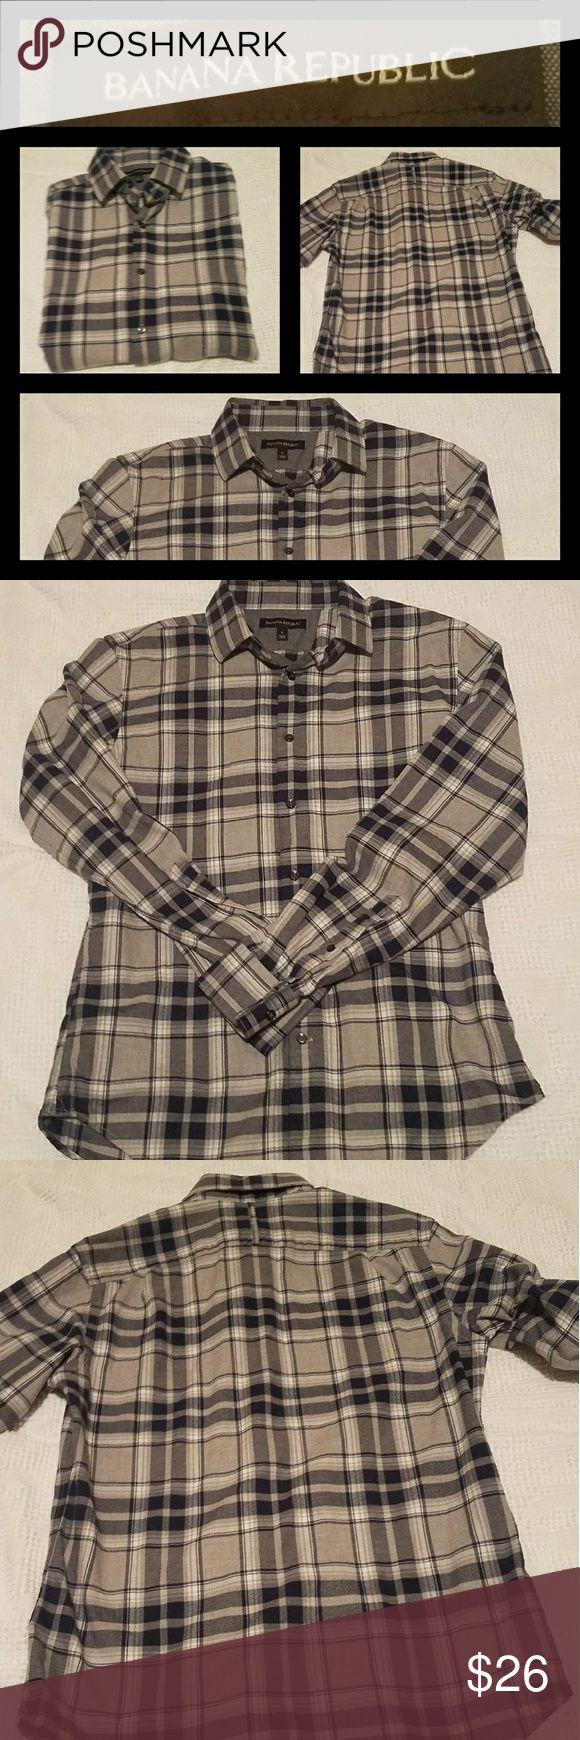 Banana Republic Flannel Beautiful, quality flannel shirt in black/charcoal plaid.  Great used condition. Banana Republic Shirts Casual Button Down Shirts